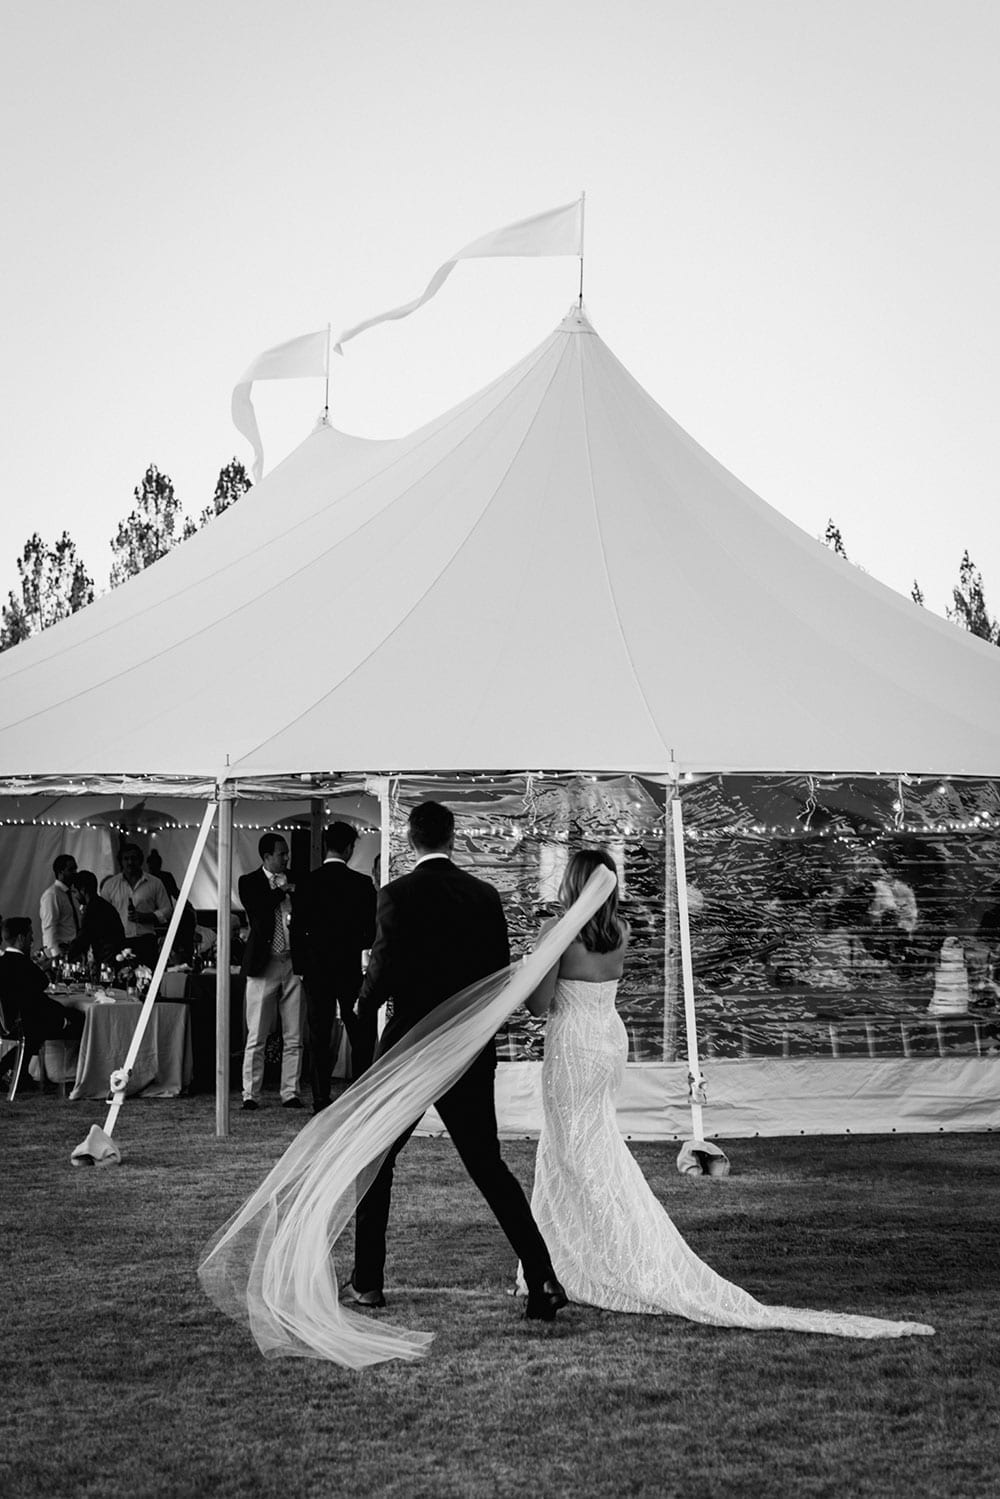 Vinka Design Features Real Weddings - bride in custom made gown, a combination of our Indi wedding dress with added beading appliqued and sewn by hand, over the top of a nude semi sheer base. Walking with groom and marquee in black and white